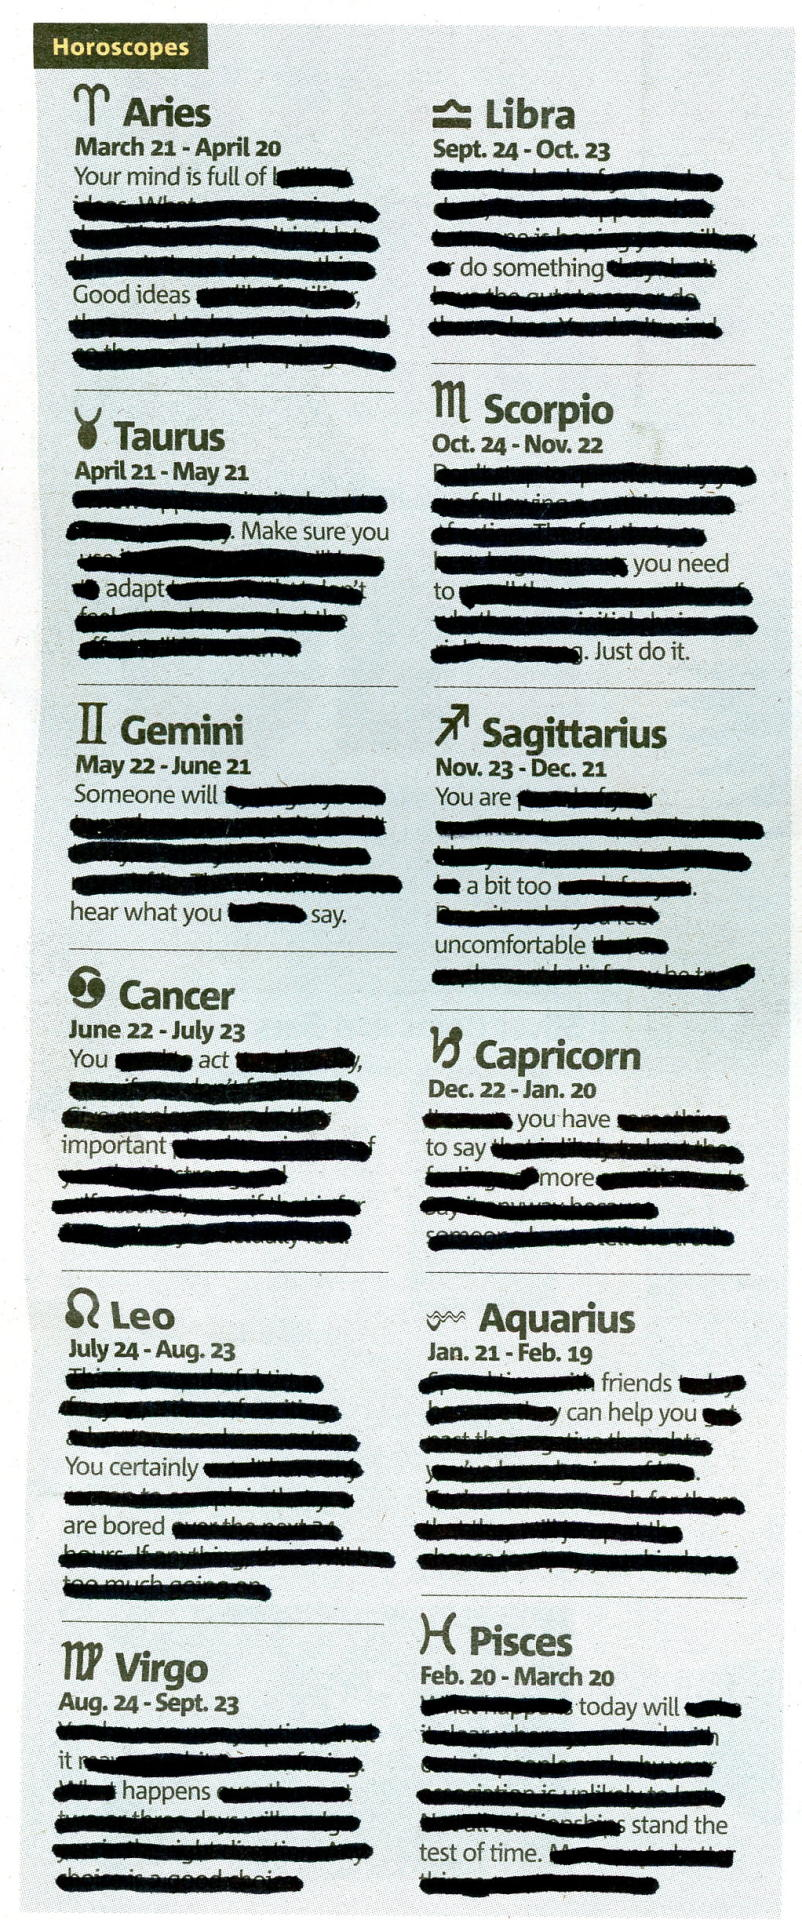 HOROSCOPE - APRIL 11, 2013